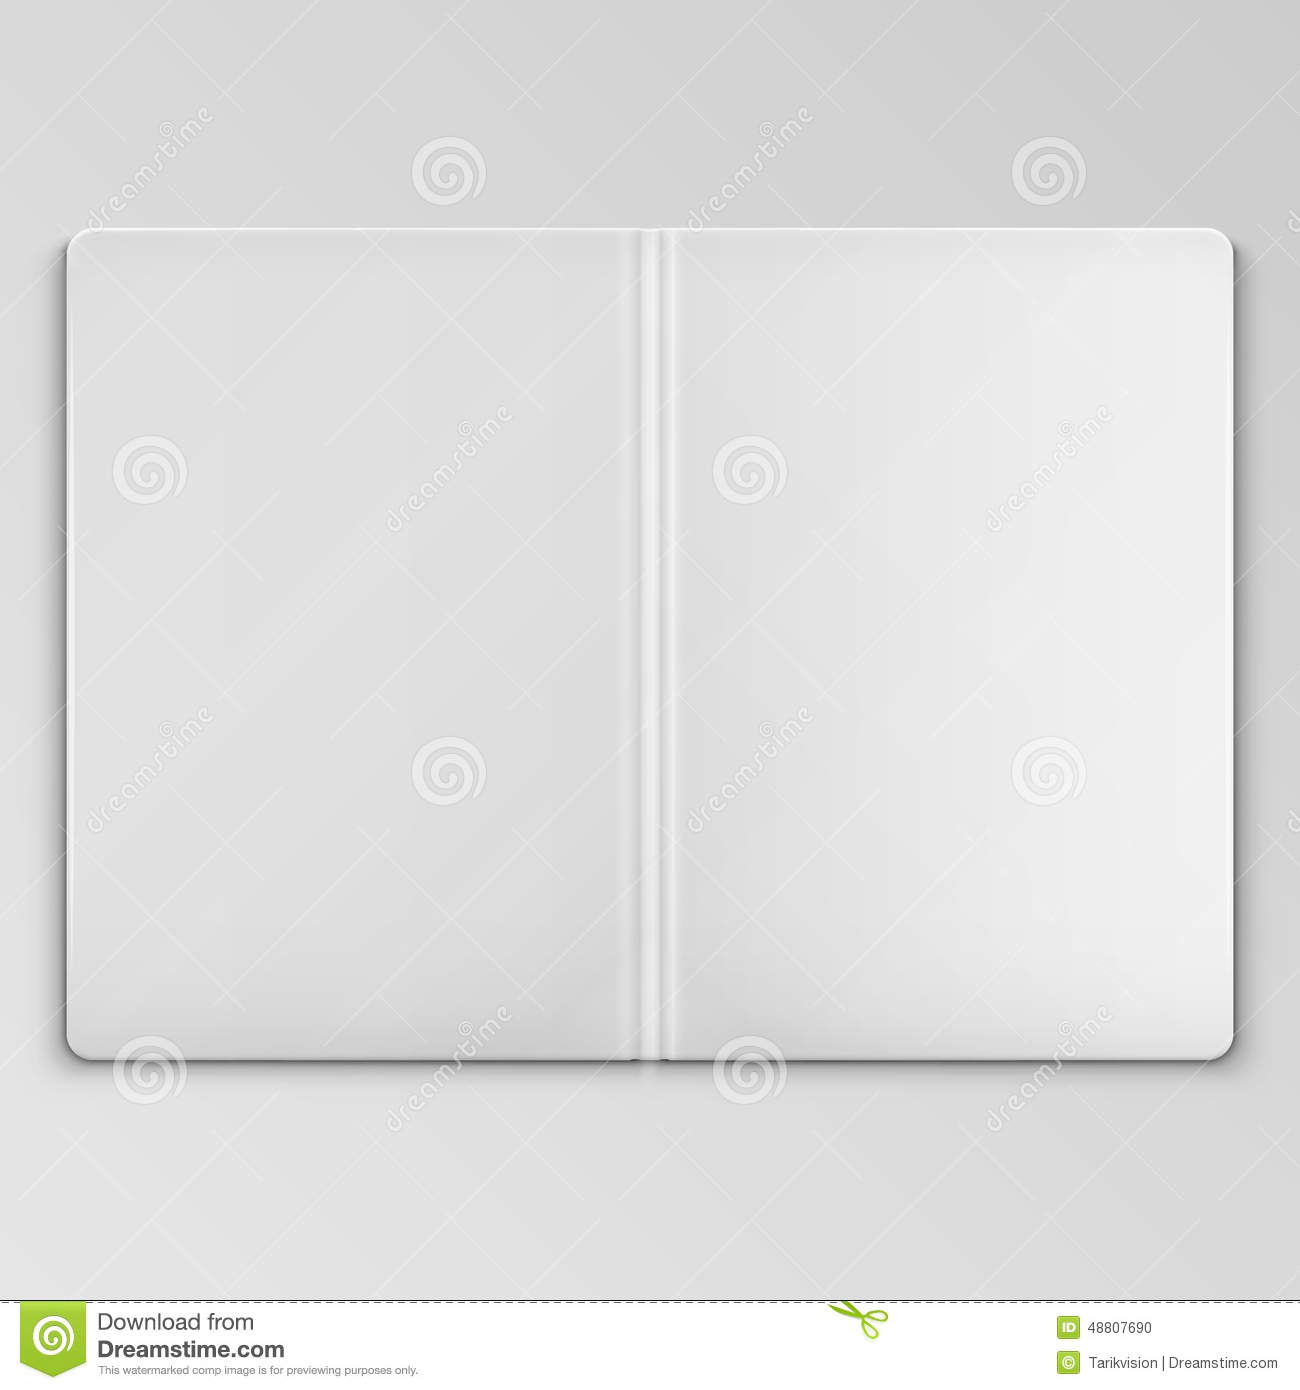 White open book cover template stock vector image 48807690 for Book cover template illustrator